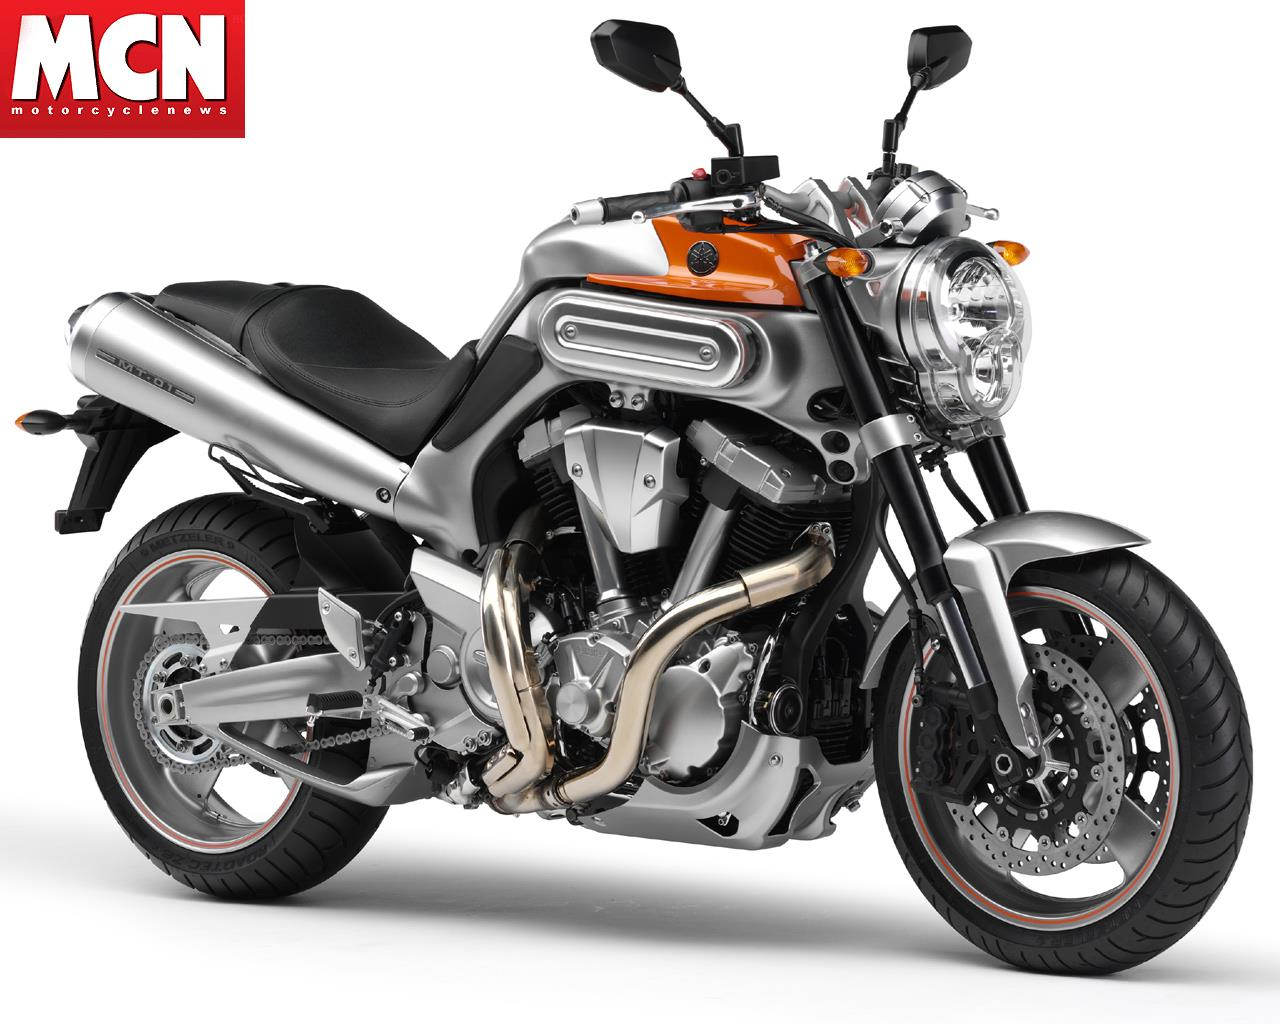 New colour for the 2008 yamaha mt 01 motorcycle mcn for Mount holly powersports yamaha